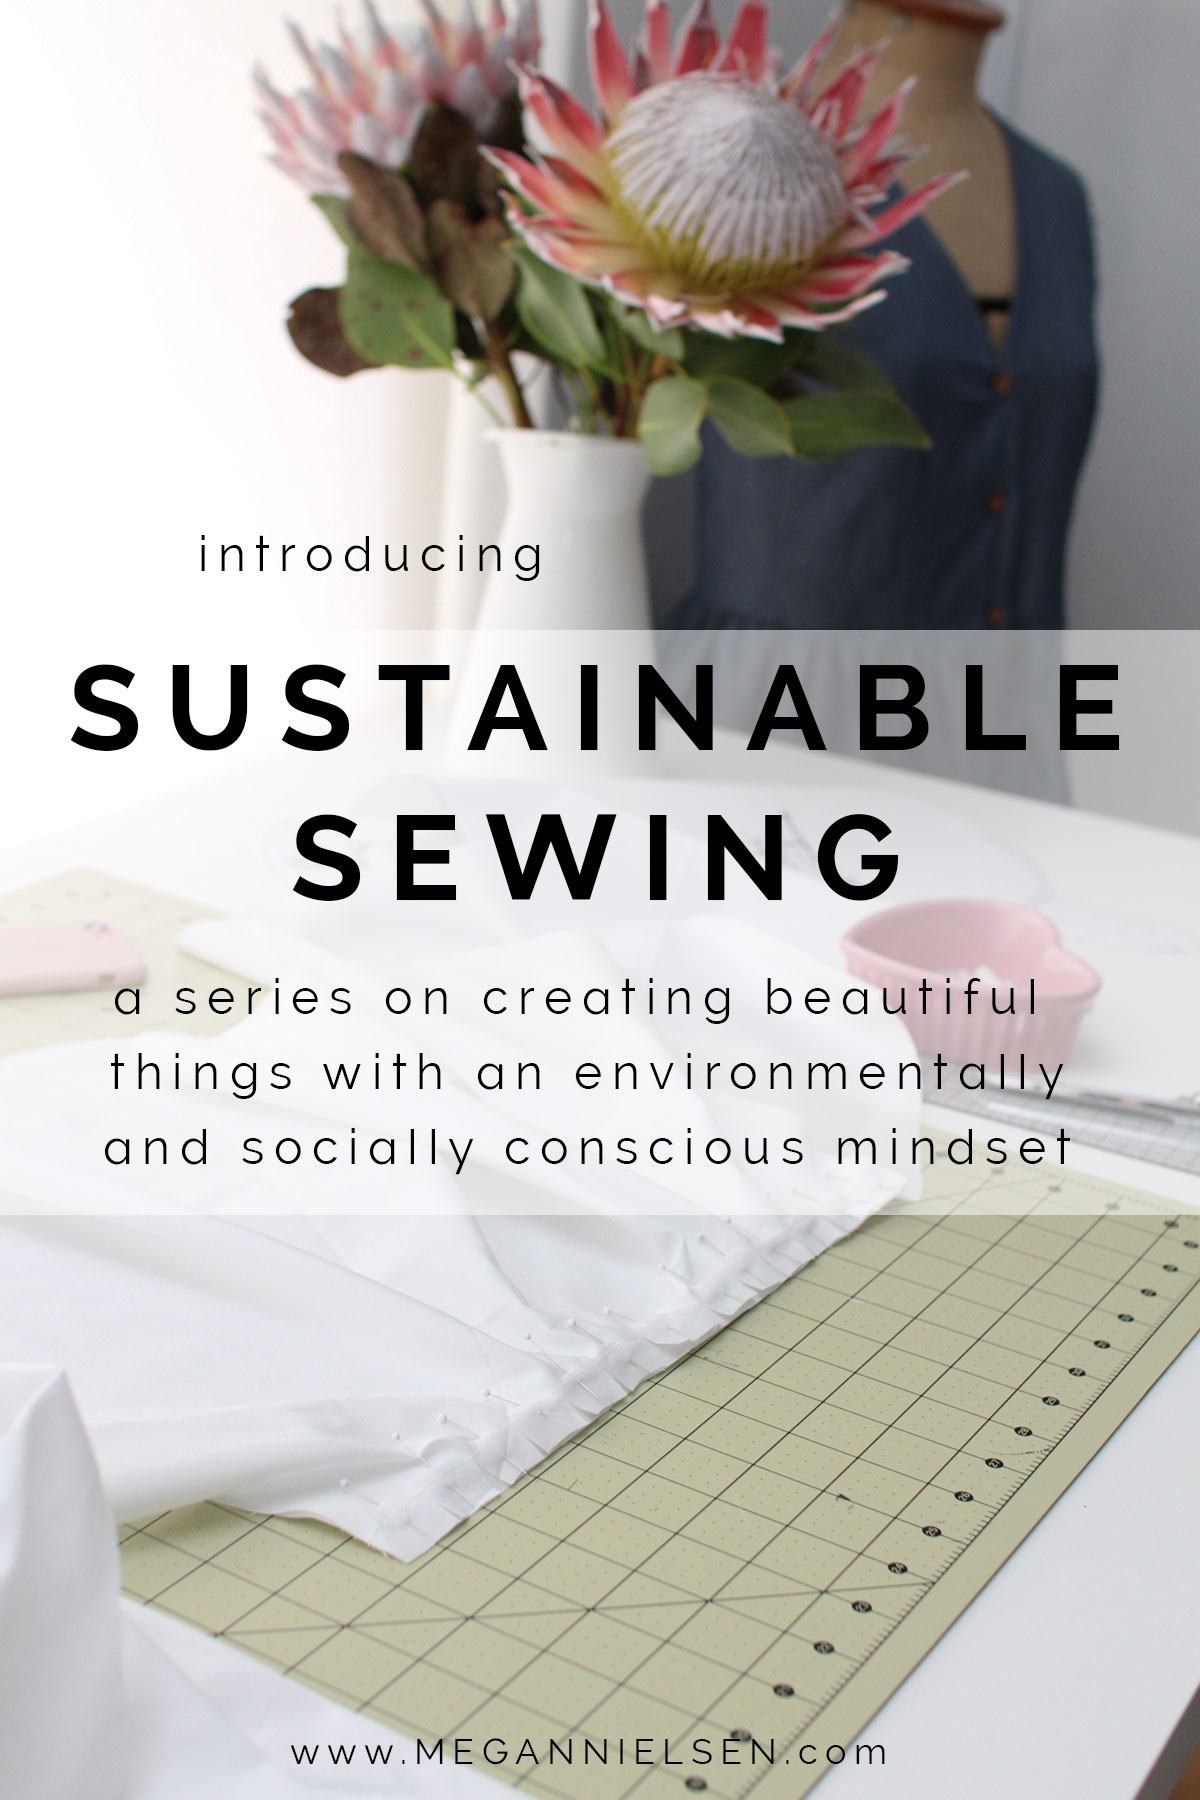 Sustainable sewing series on Megan Nielsen Design Diary // exploring how to create beautiful things with an environmentally and socially conscious mindset